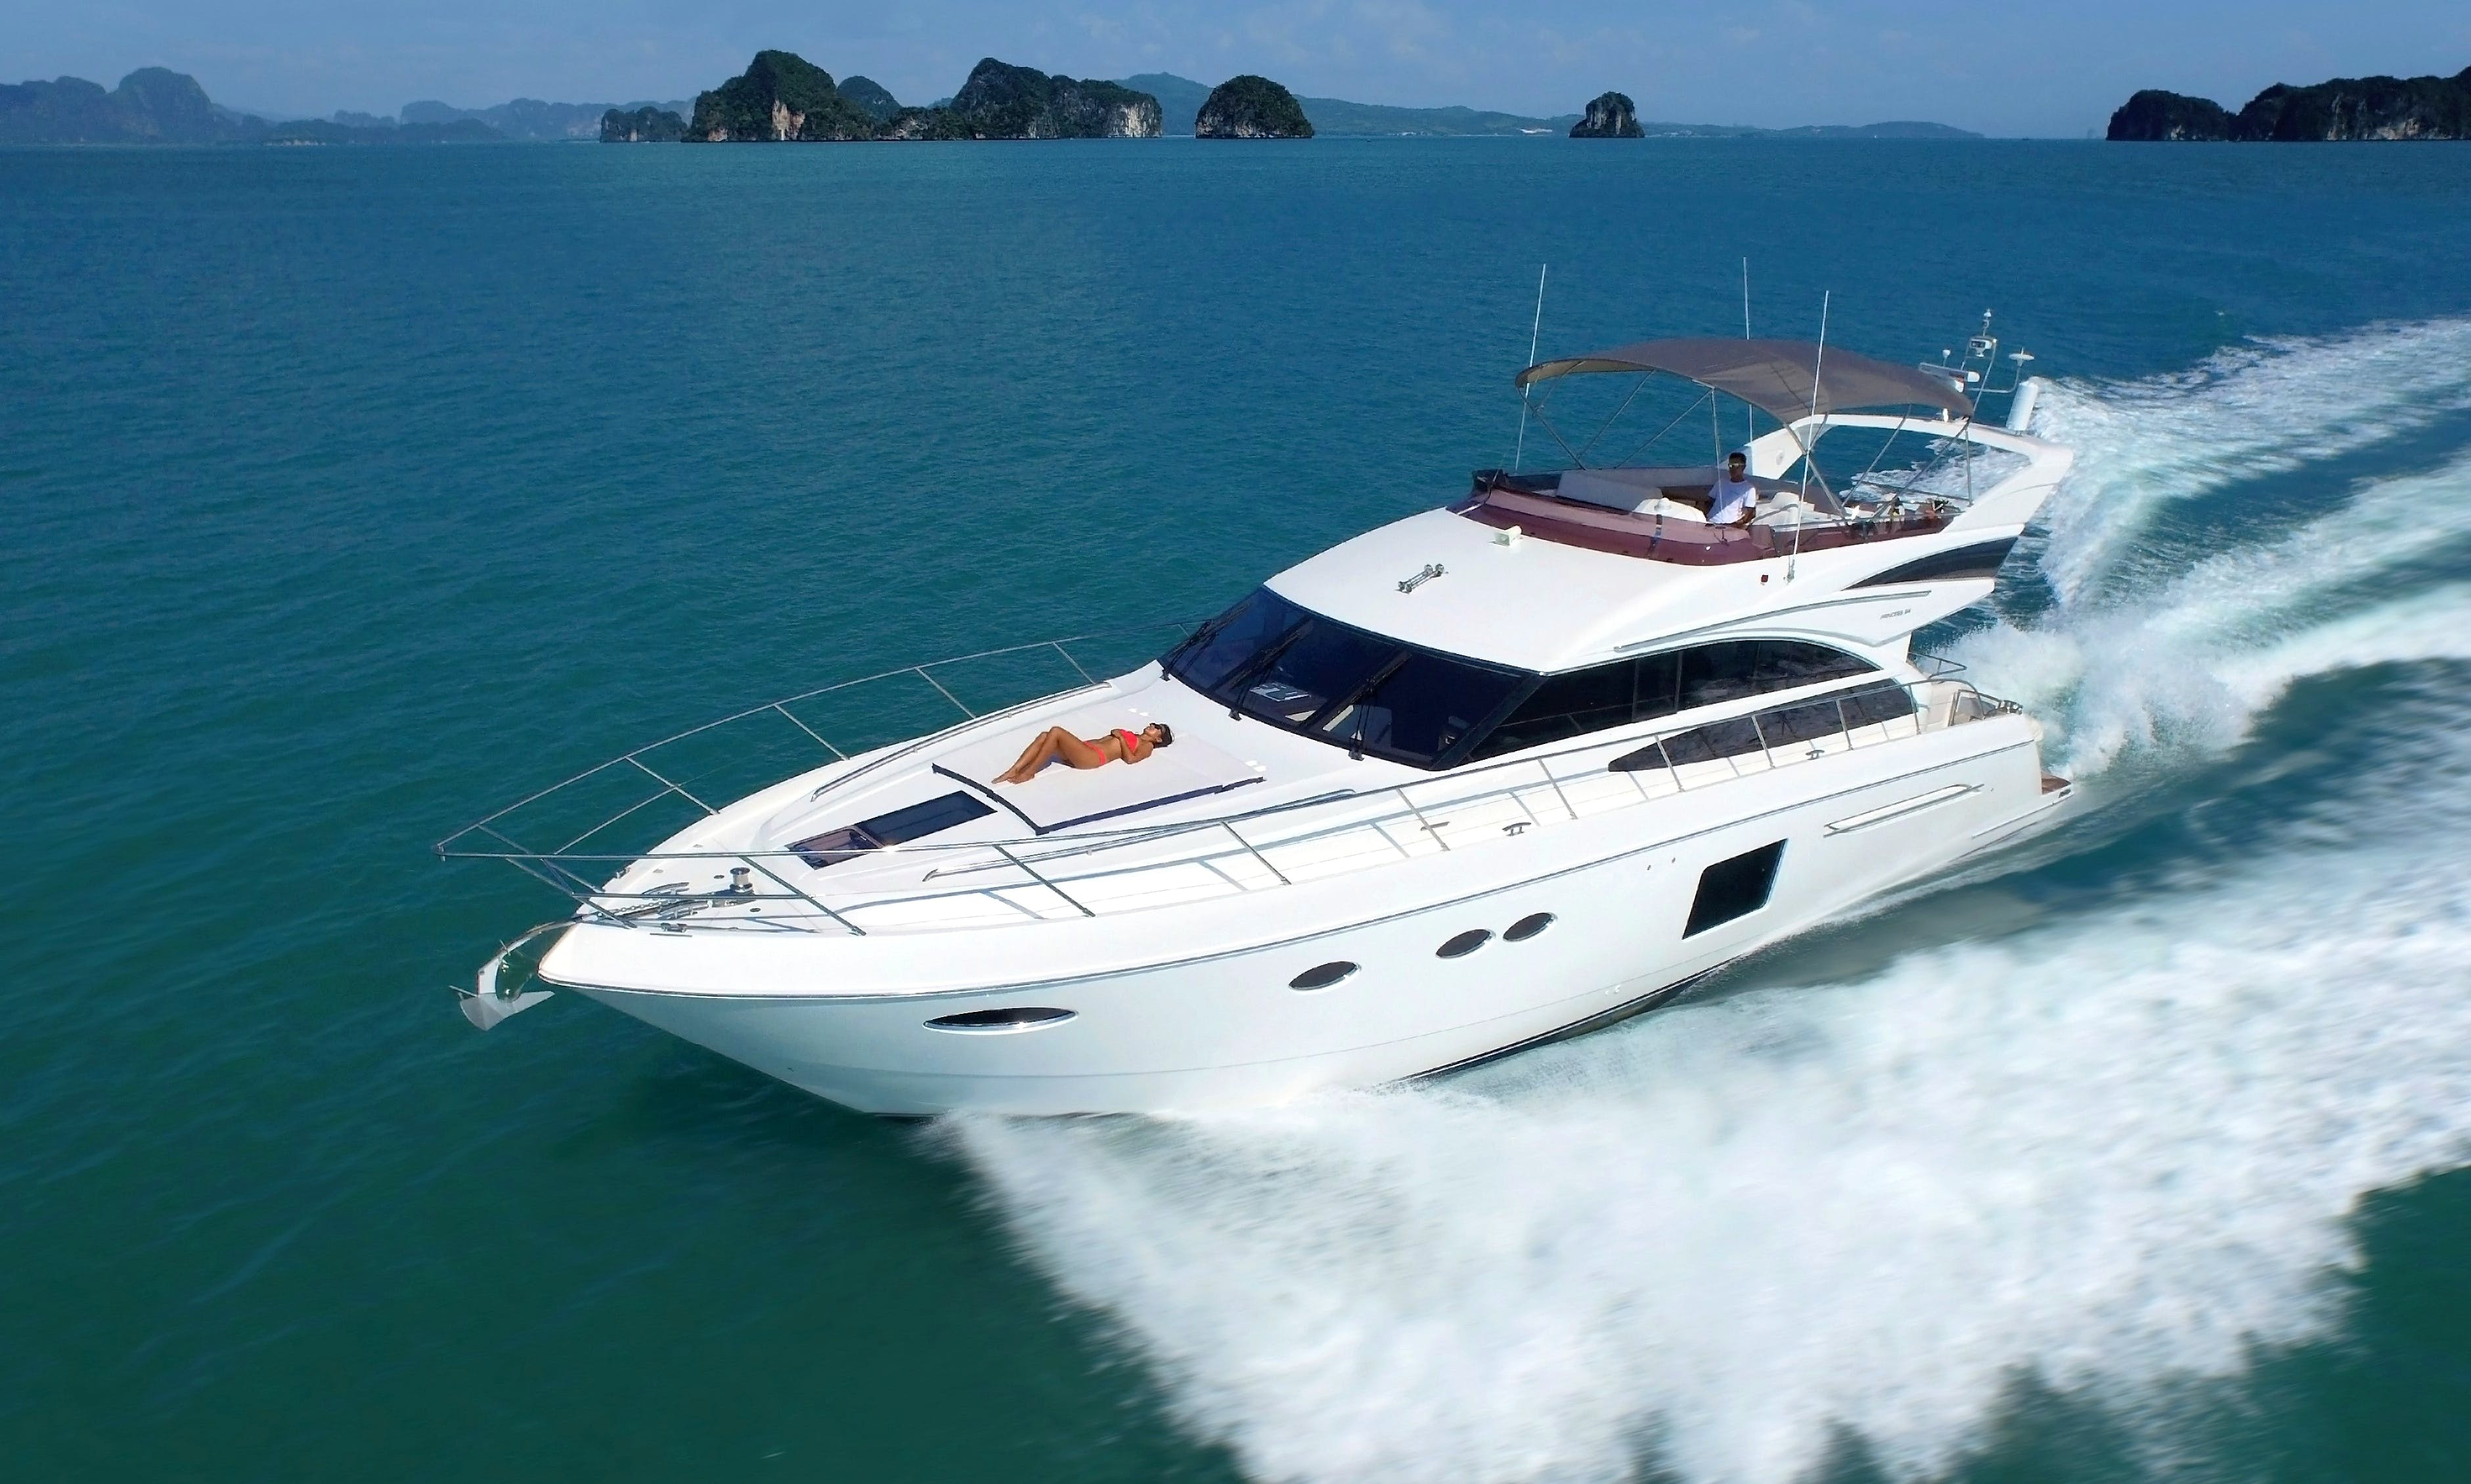 Princess P64 Motor Yacht Charter for Up to 18 People in Phuket, Thailand